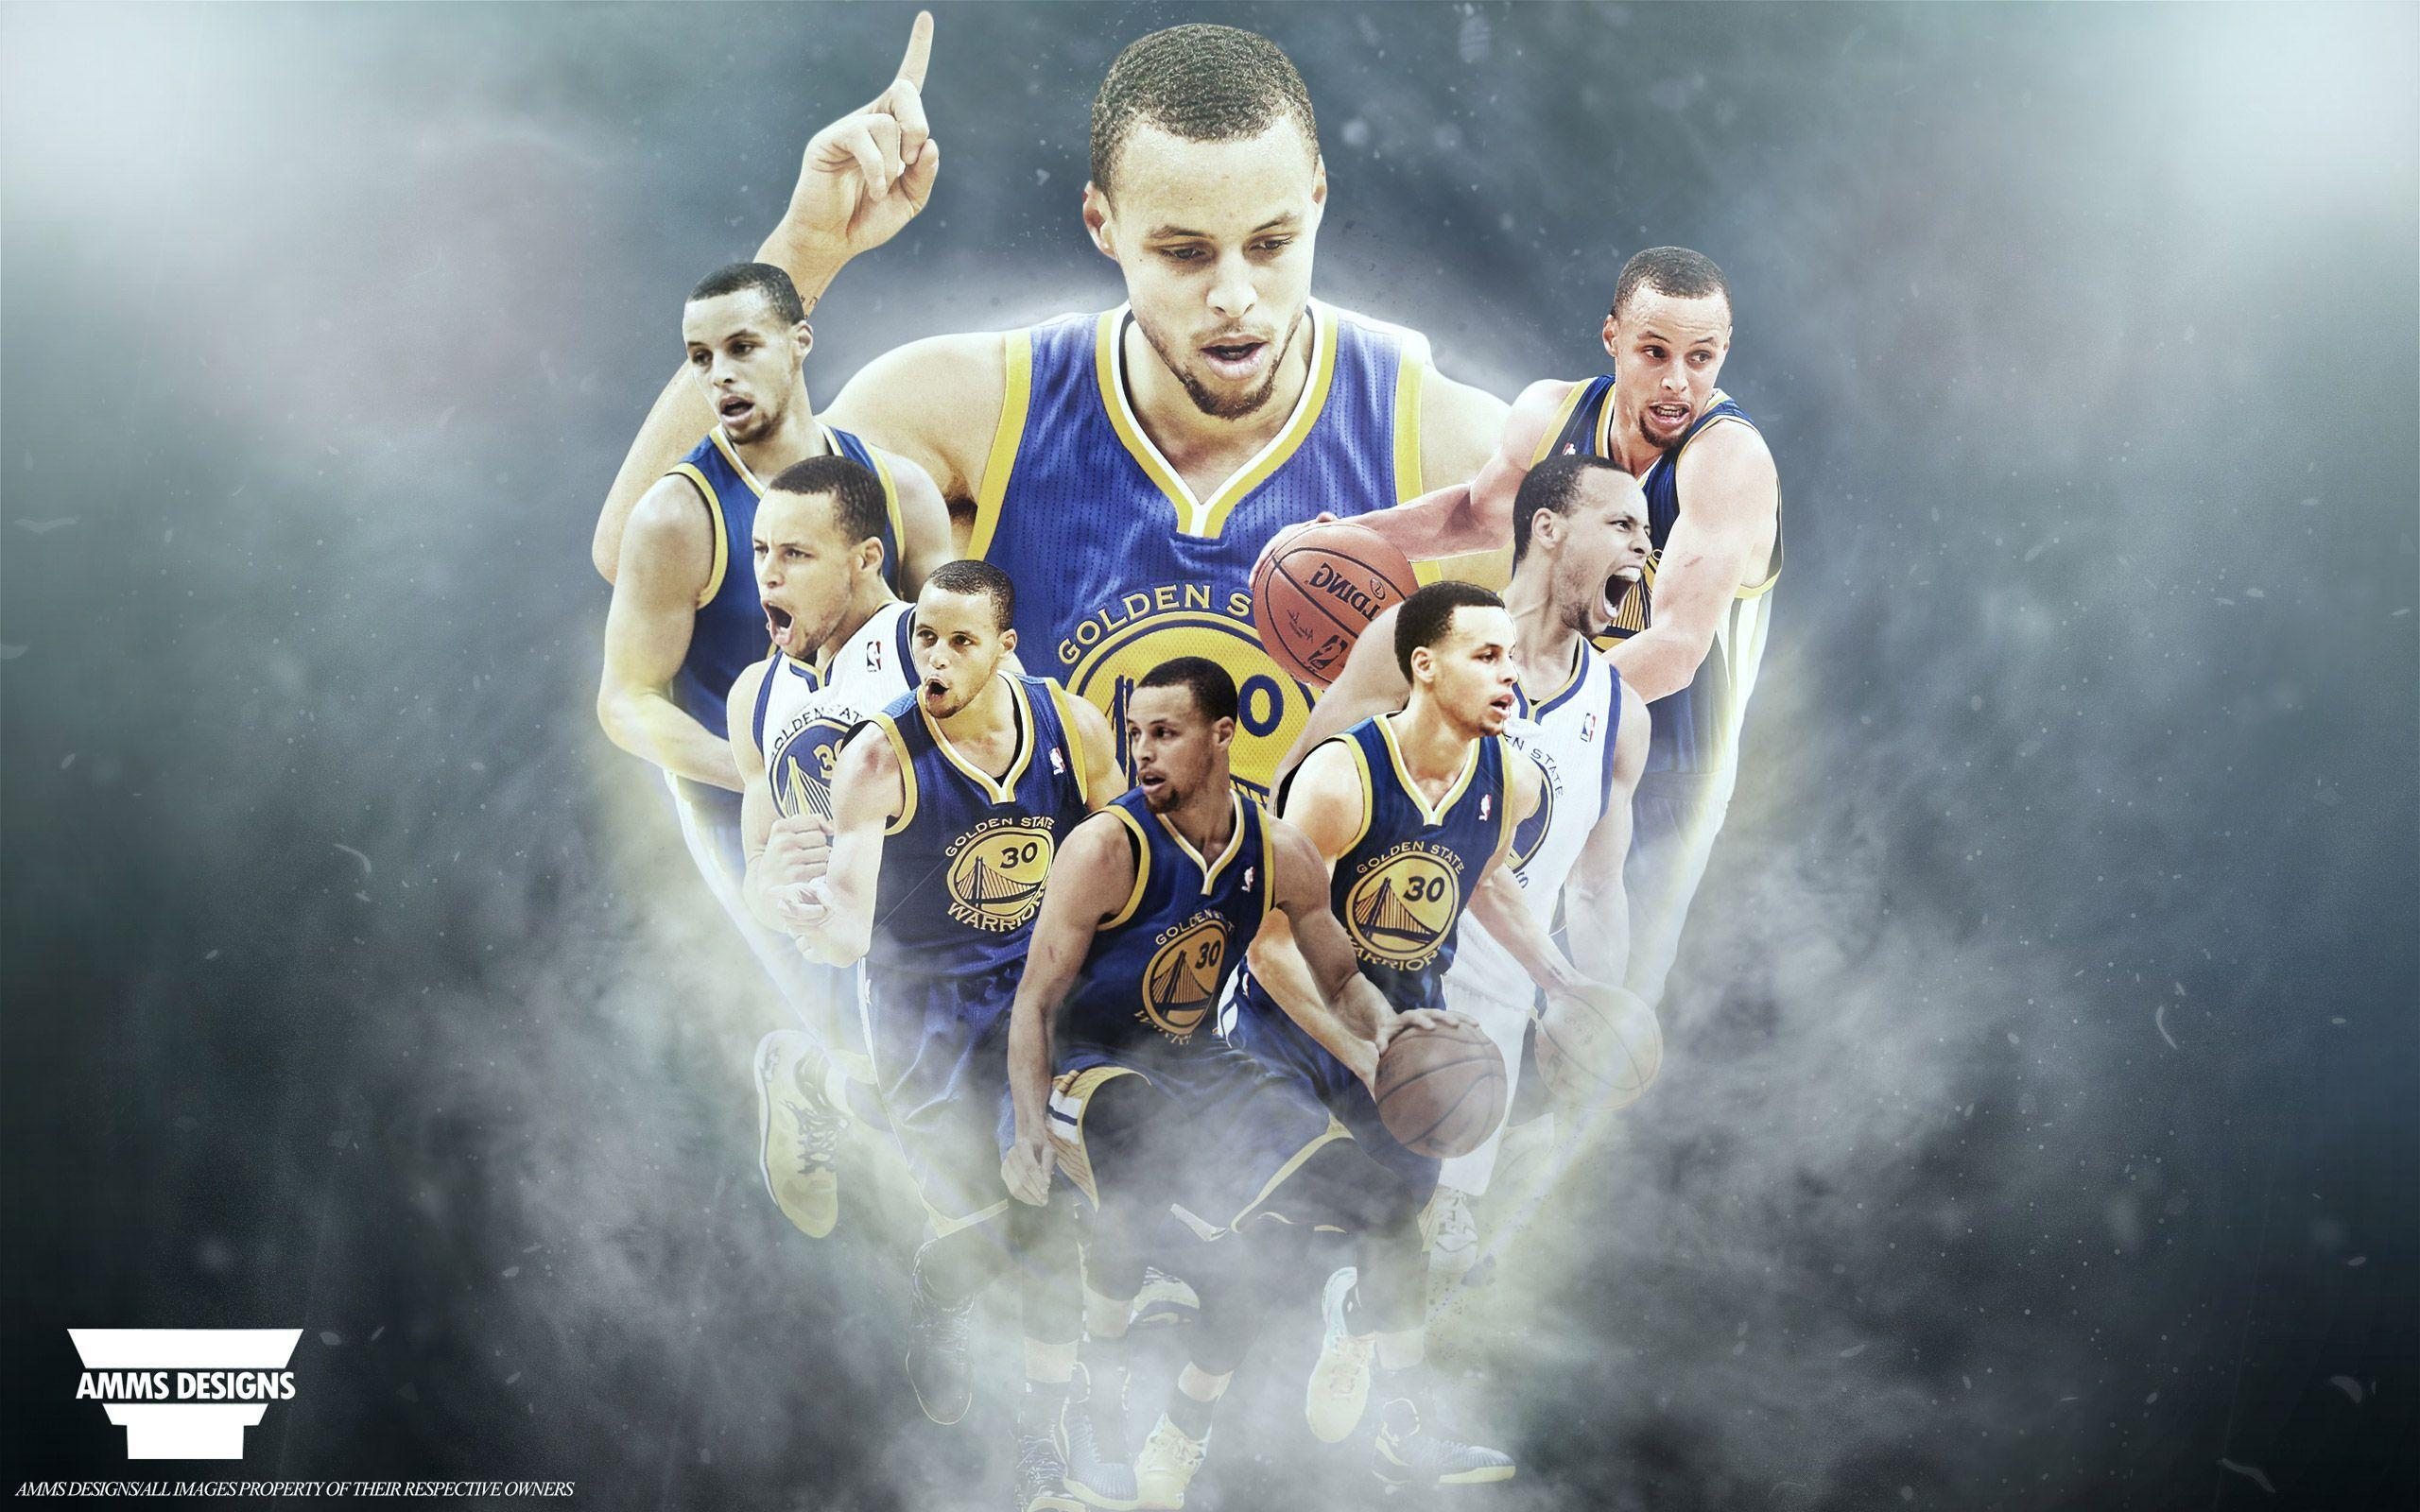 Sport Wallpaper Stephen Curry: NBA Basketball Wallpapers 2015